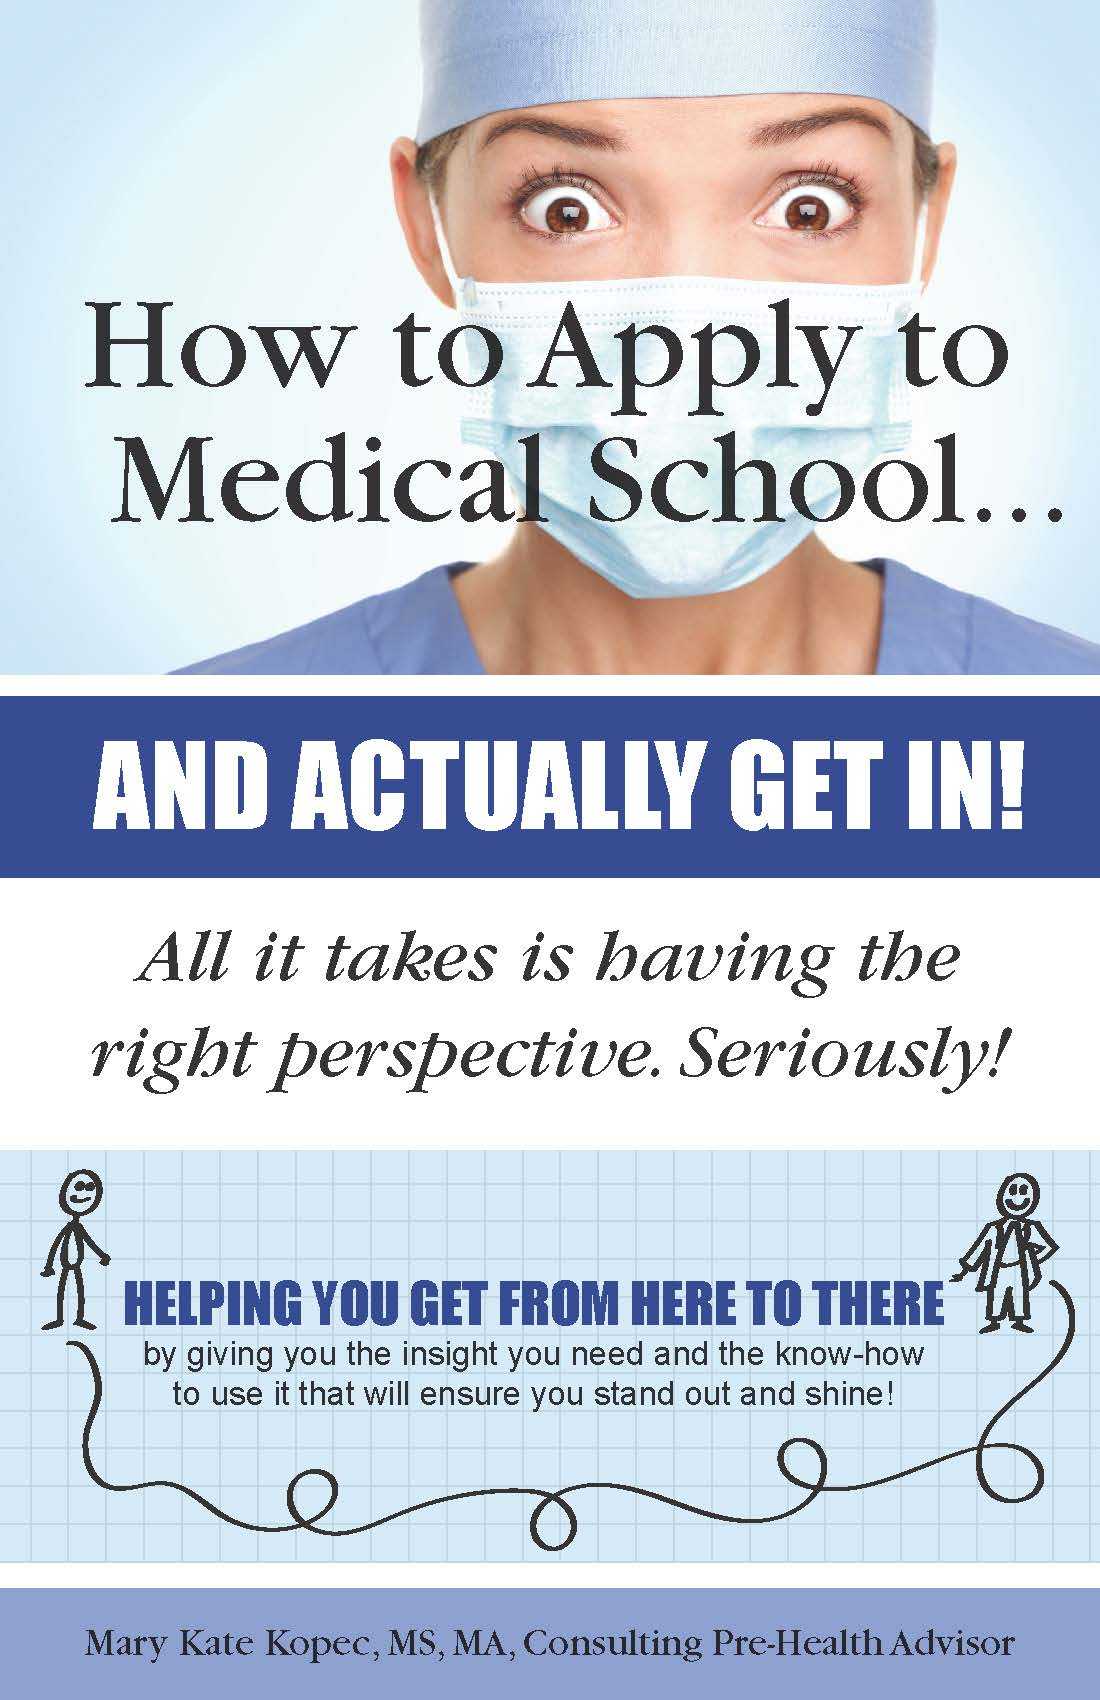 How to Apply to Medical School book cover